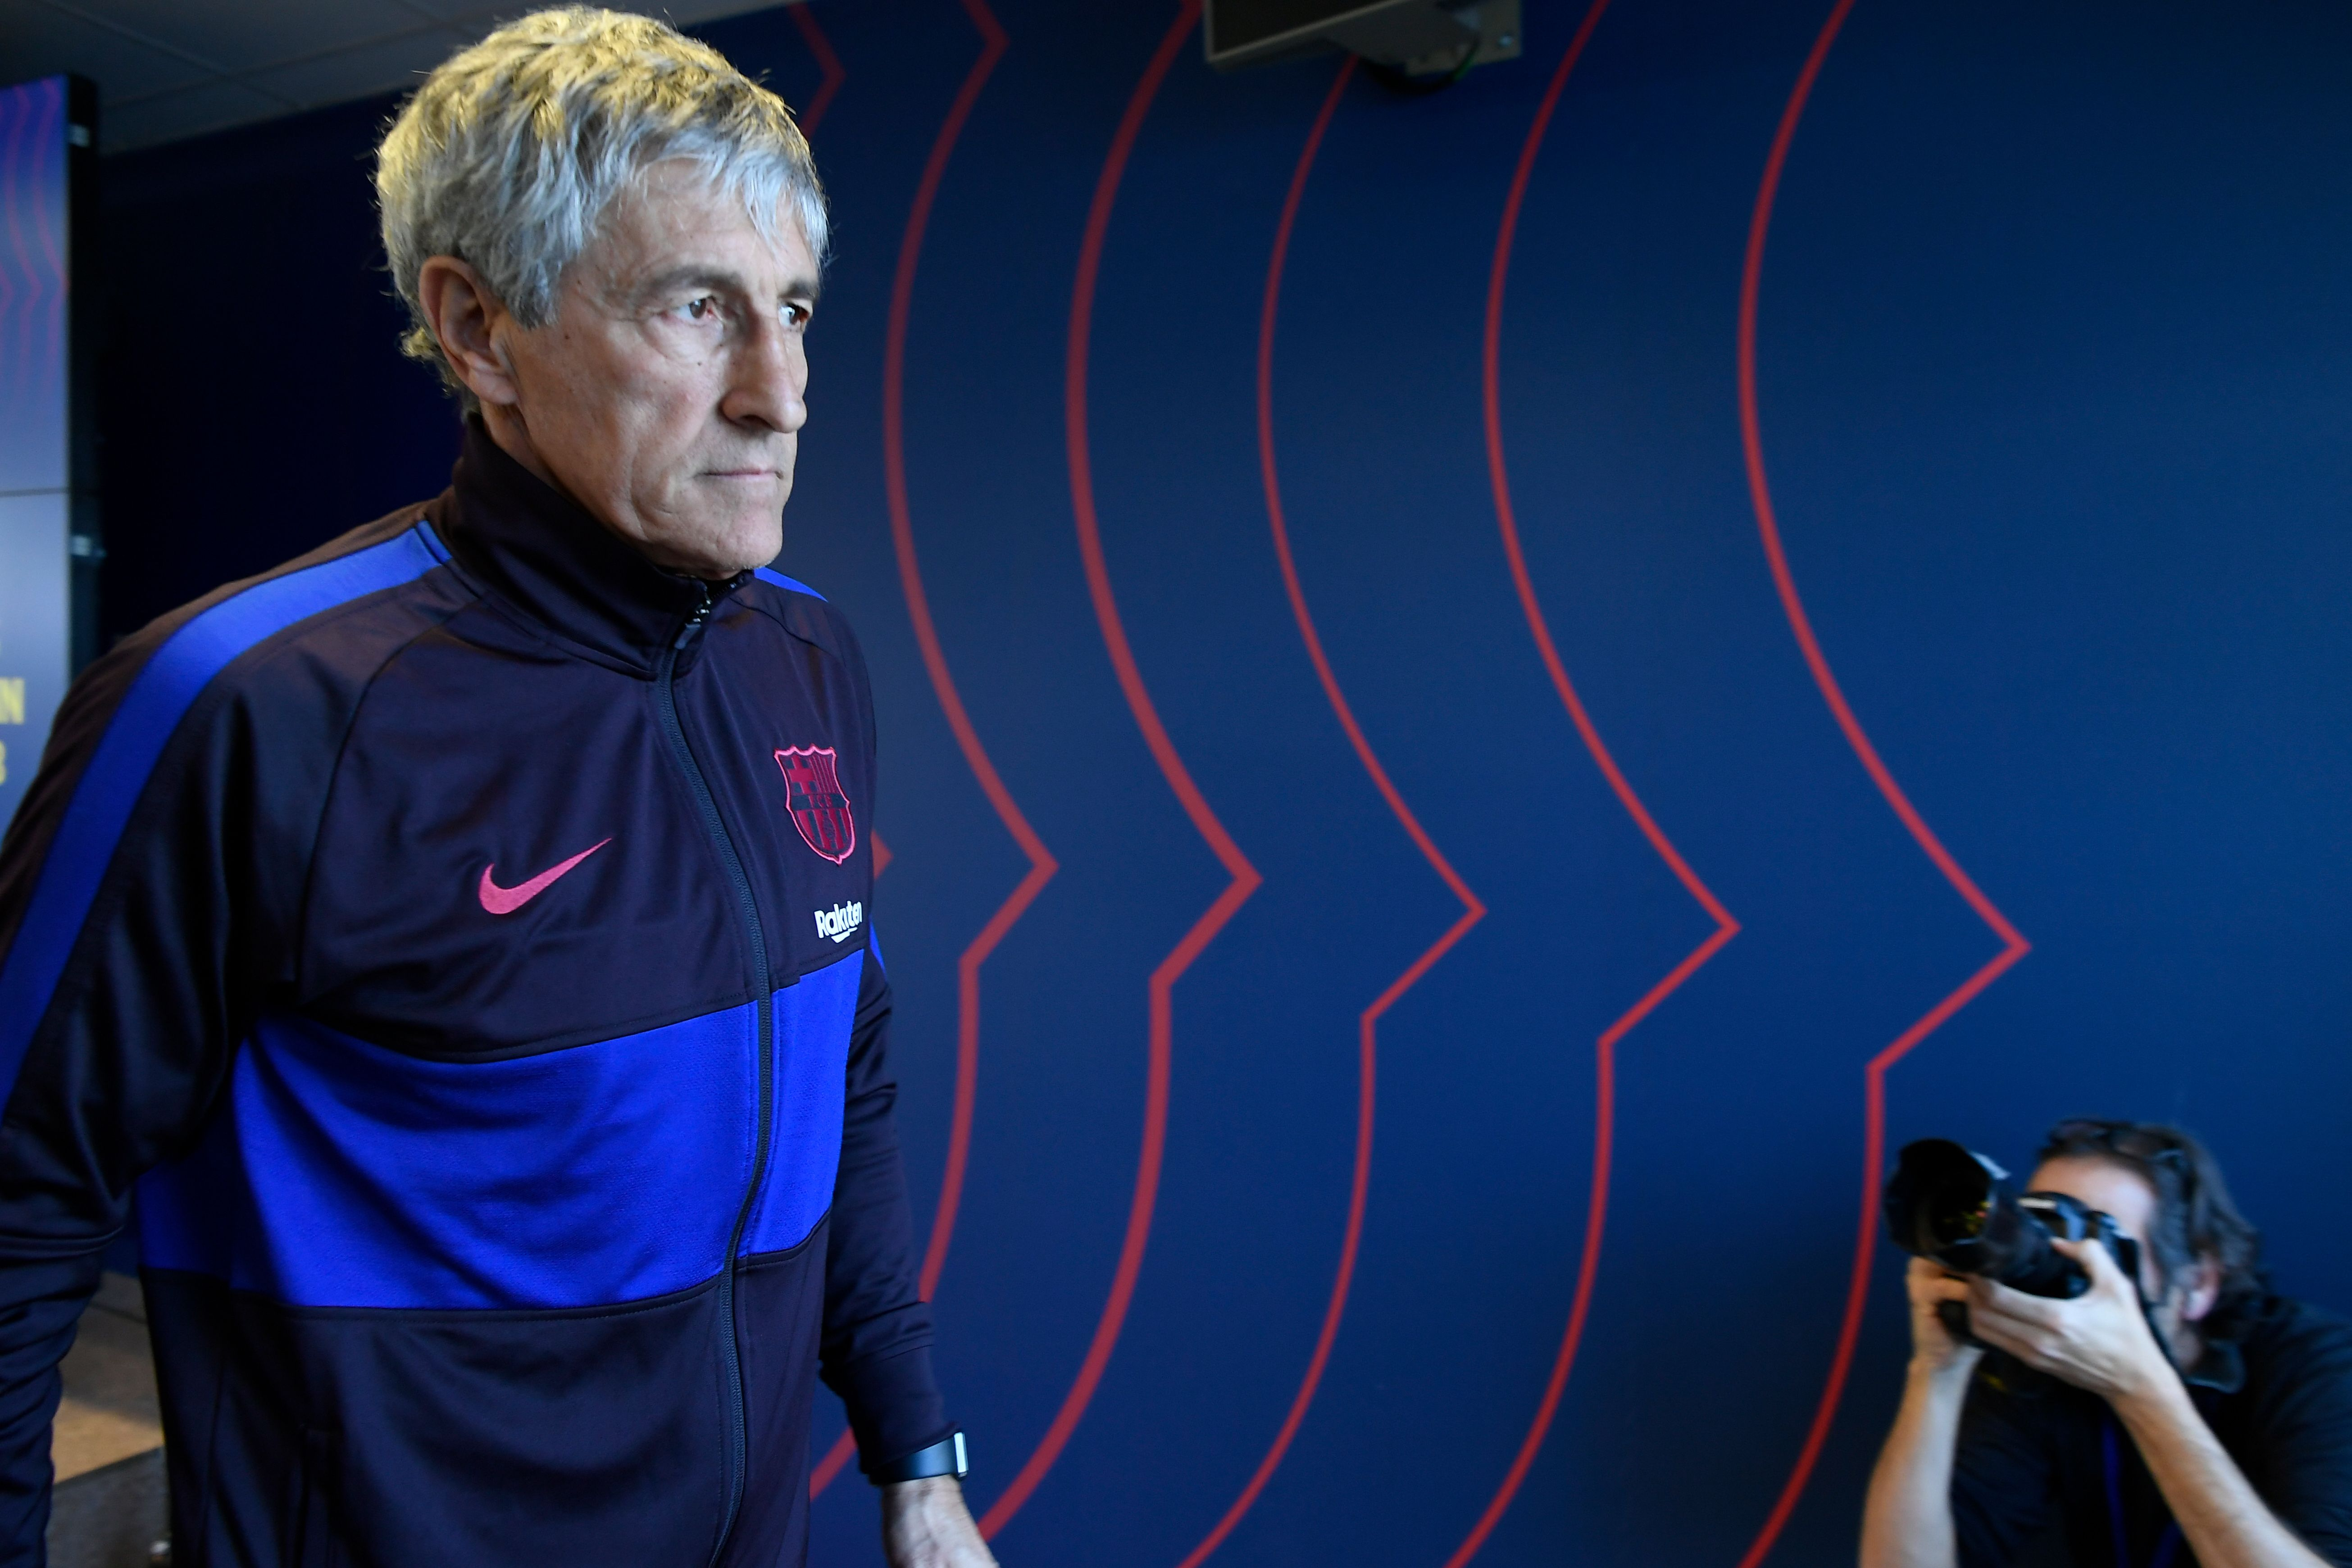 Quique Setien - The man to take Barcelona forward (Photo by LLUIS GENE/AFP via Getty Images)